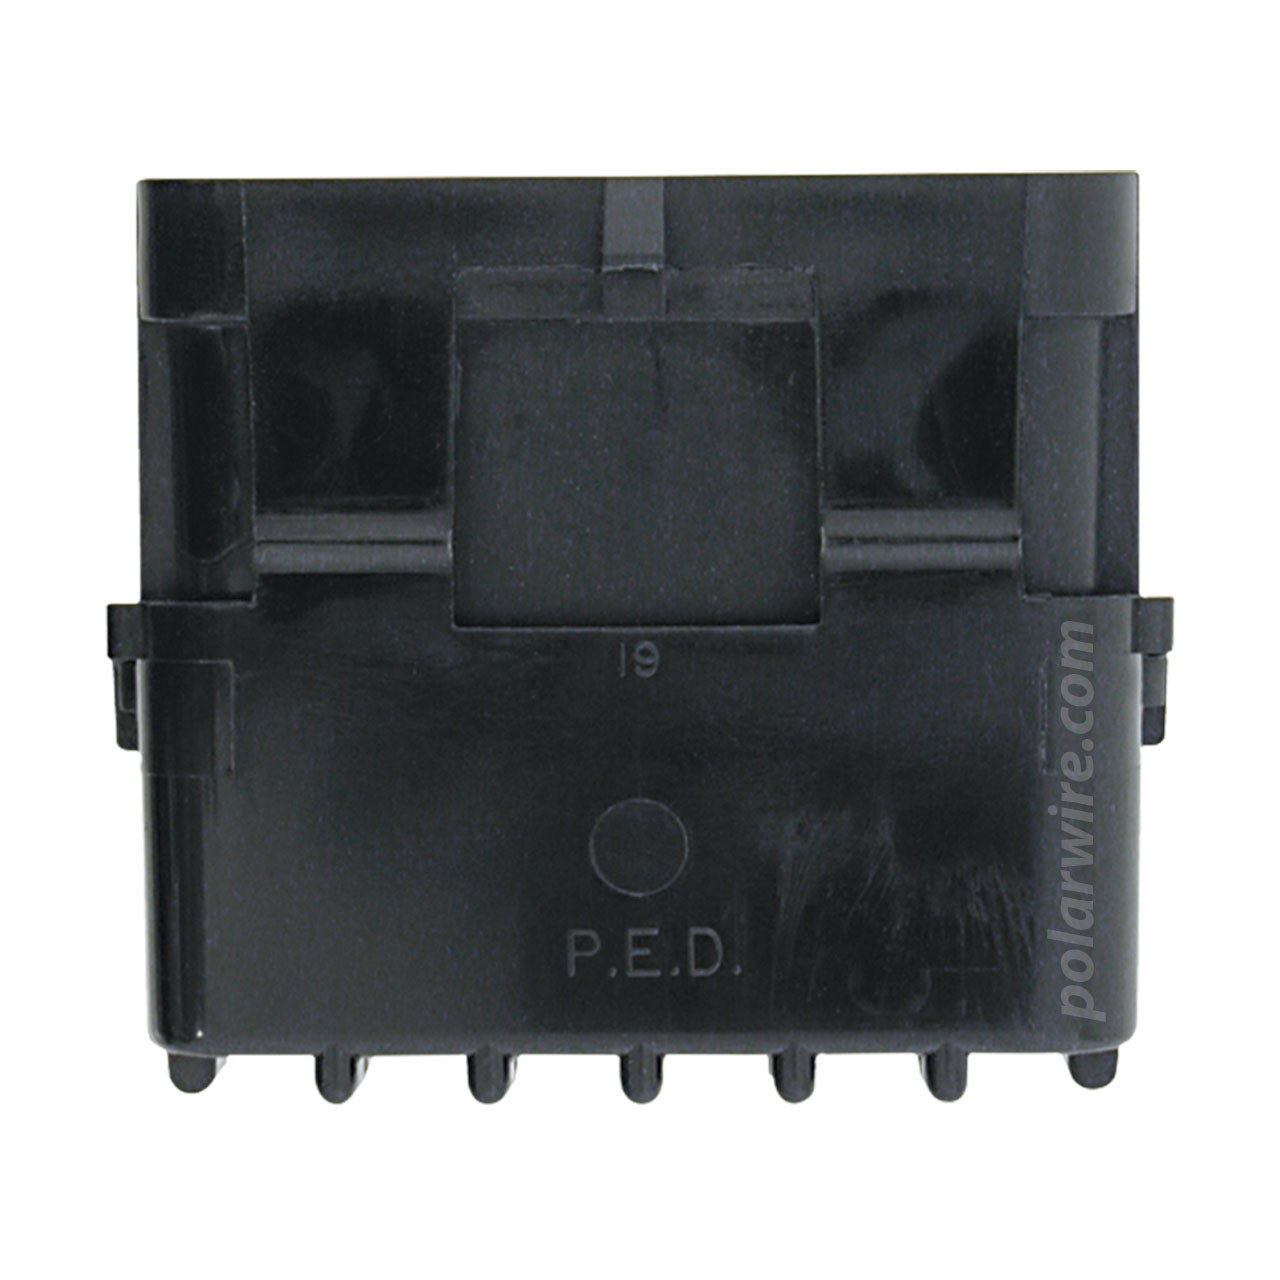 WEATHER PACK 6 PIN MALE SHROUD HOUSING